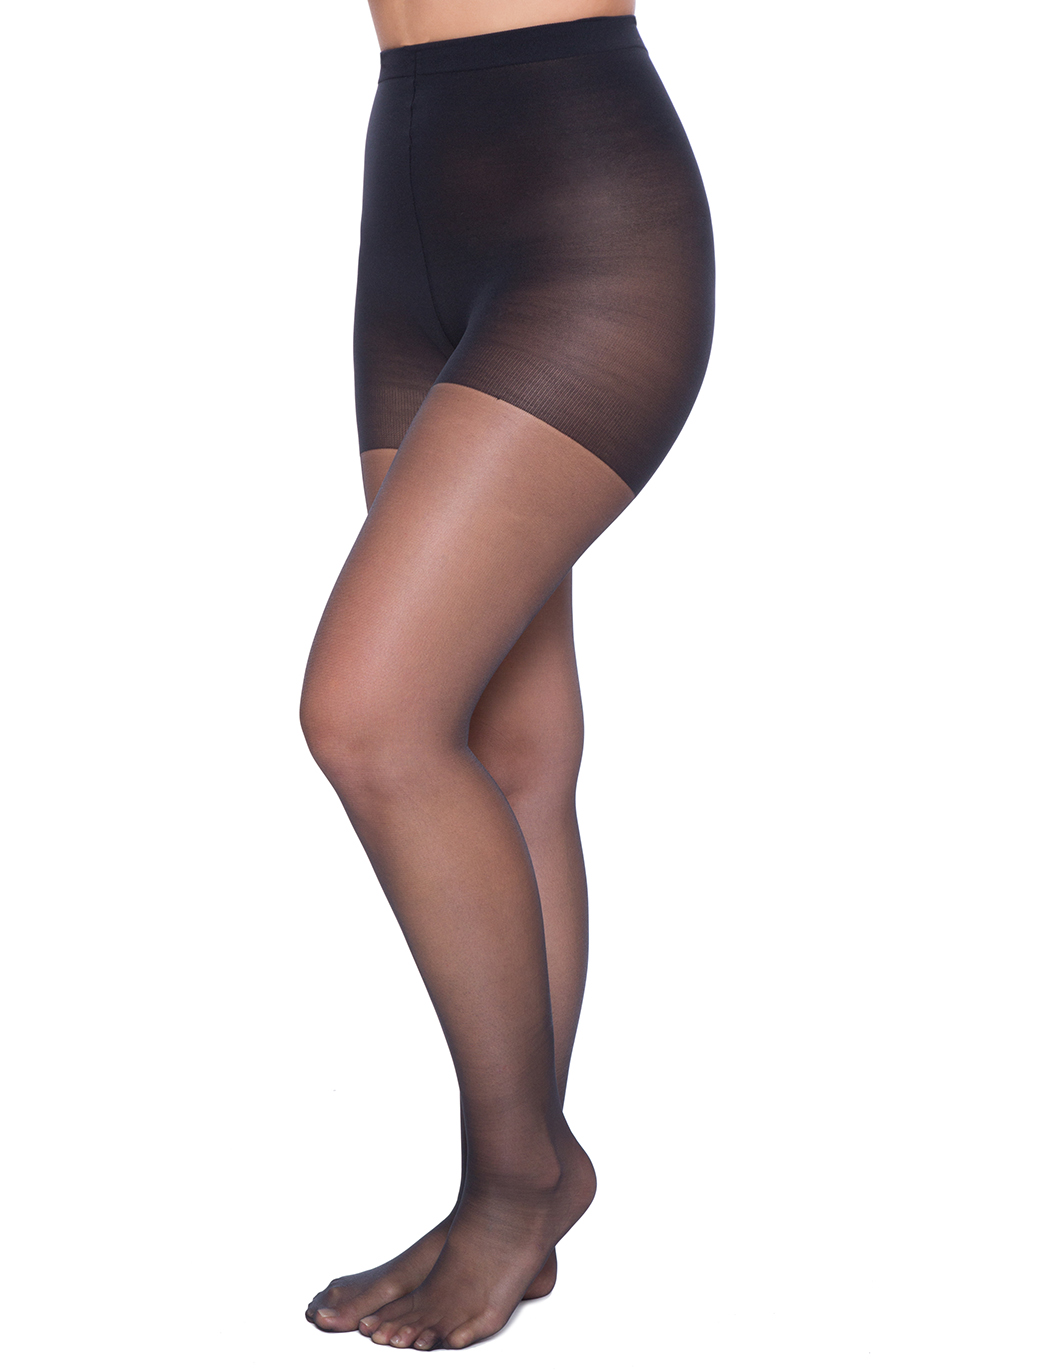 386db004c10b68 Sheer Tights with Control Top | Women's Plus Size Accessories ...